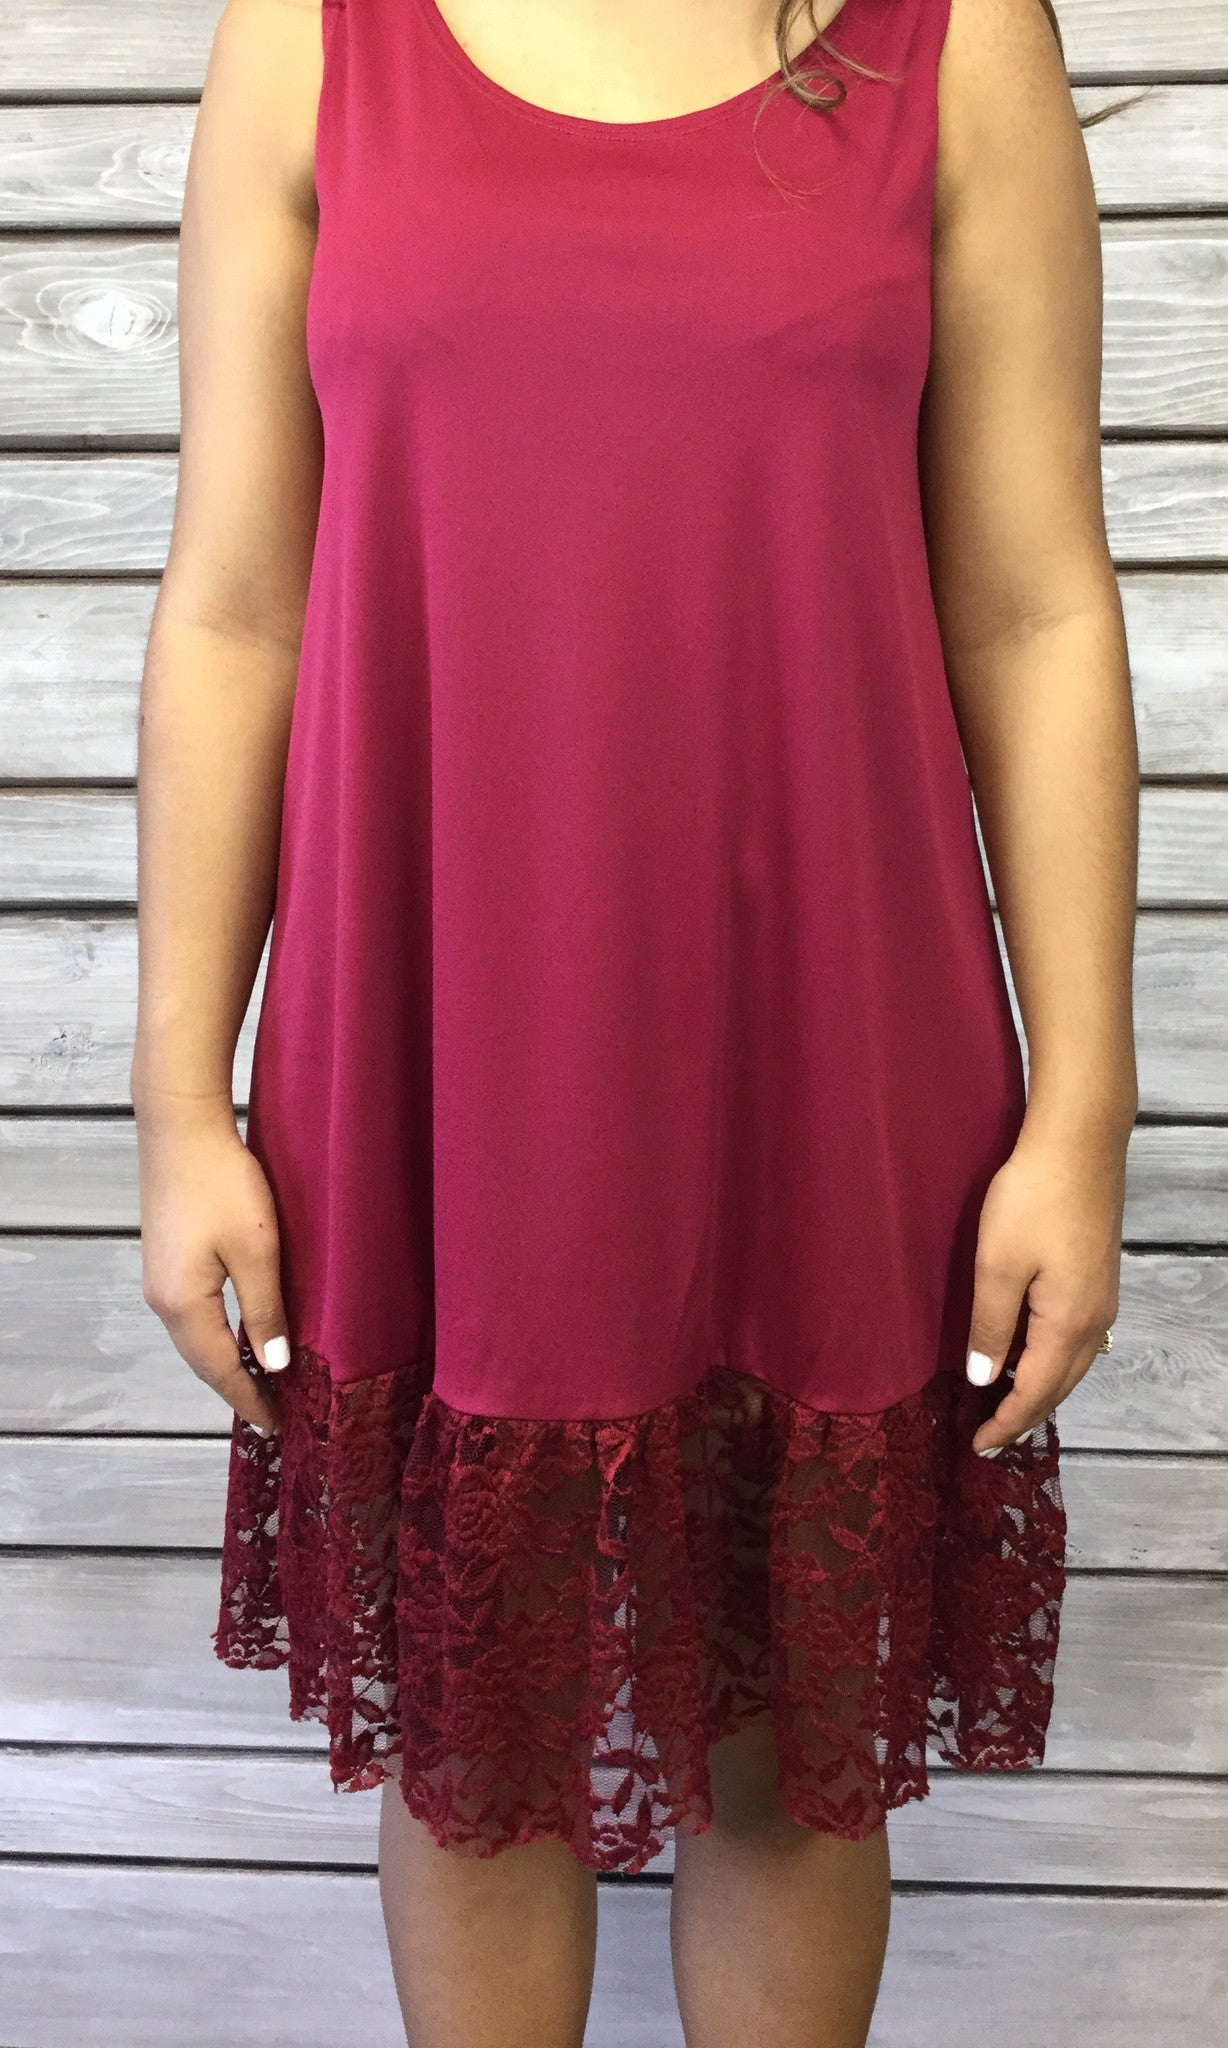 Basic Dress Extender - Burgundy - FINAL SALE